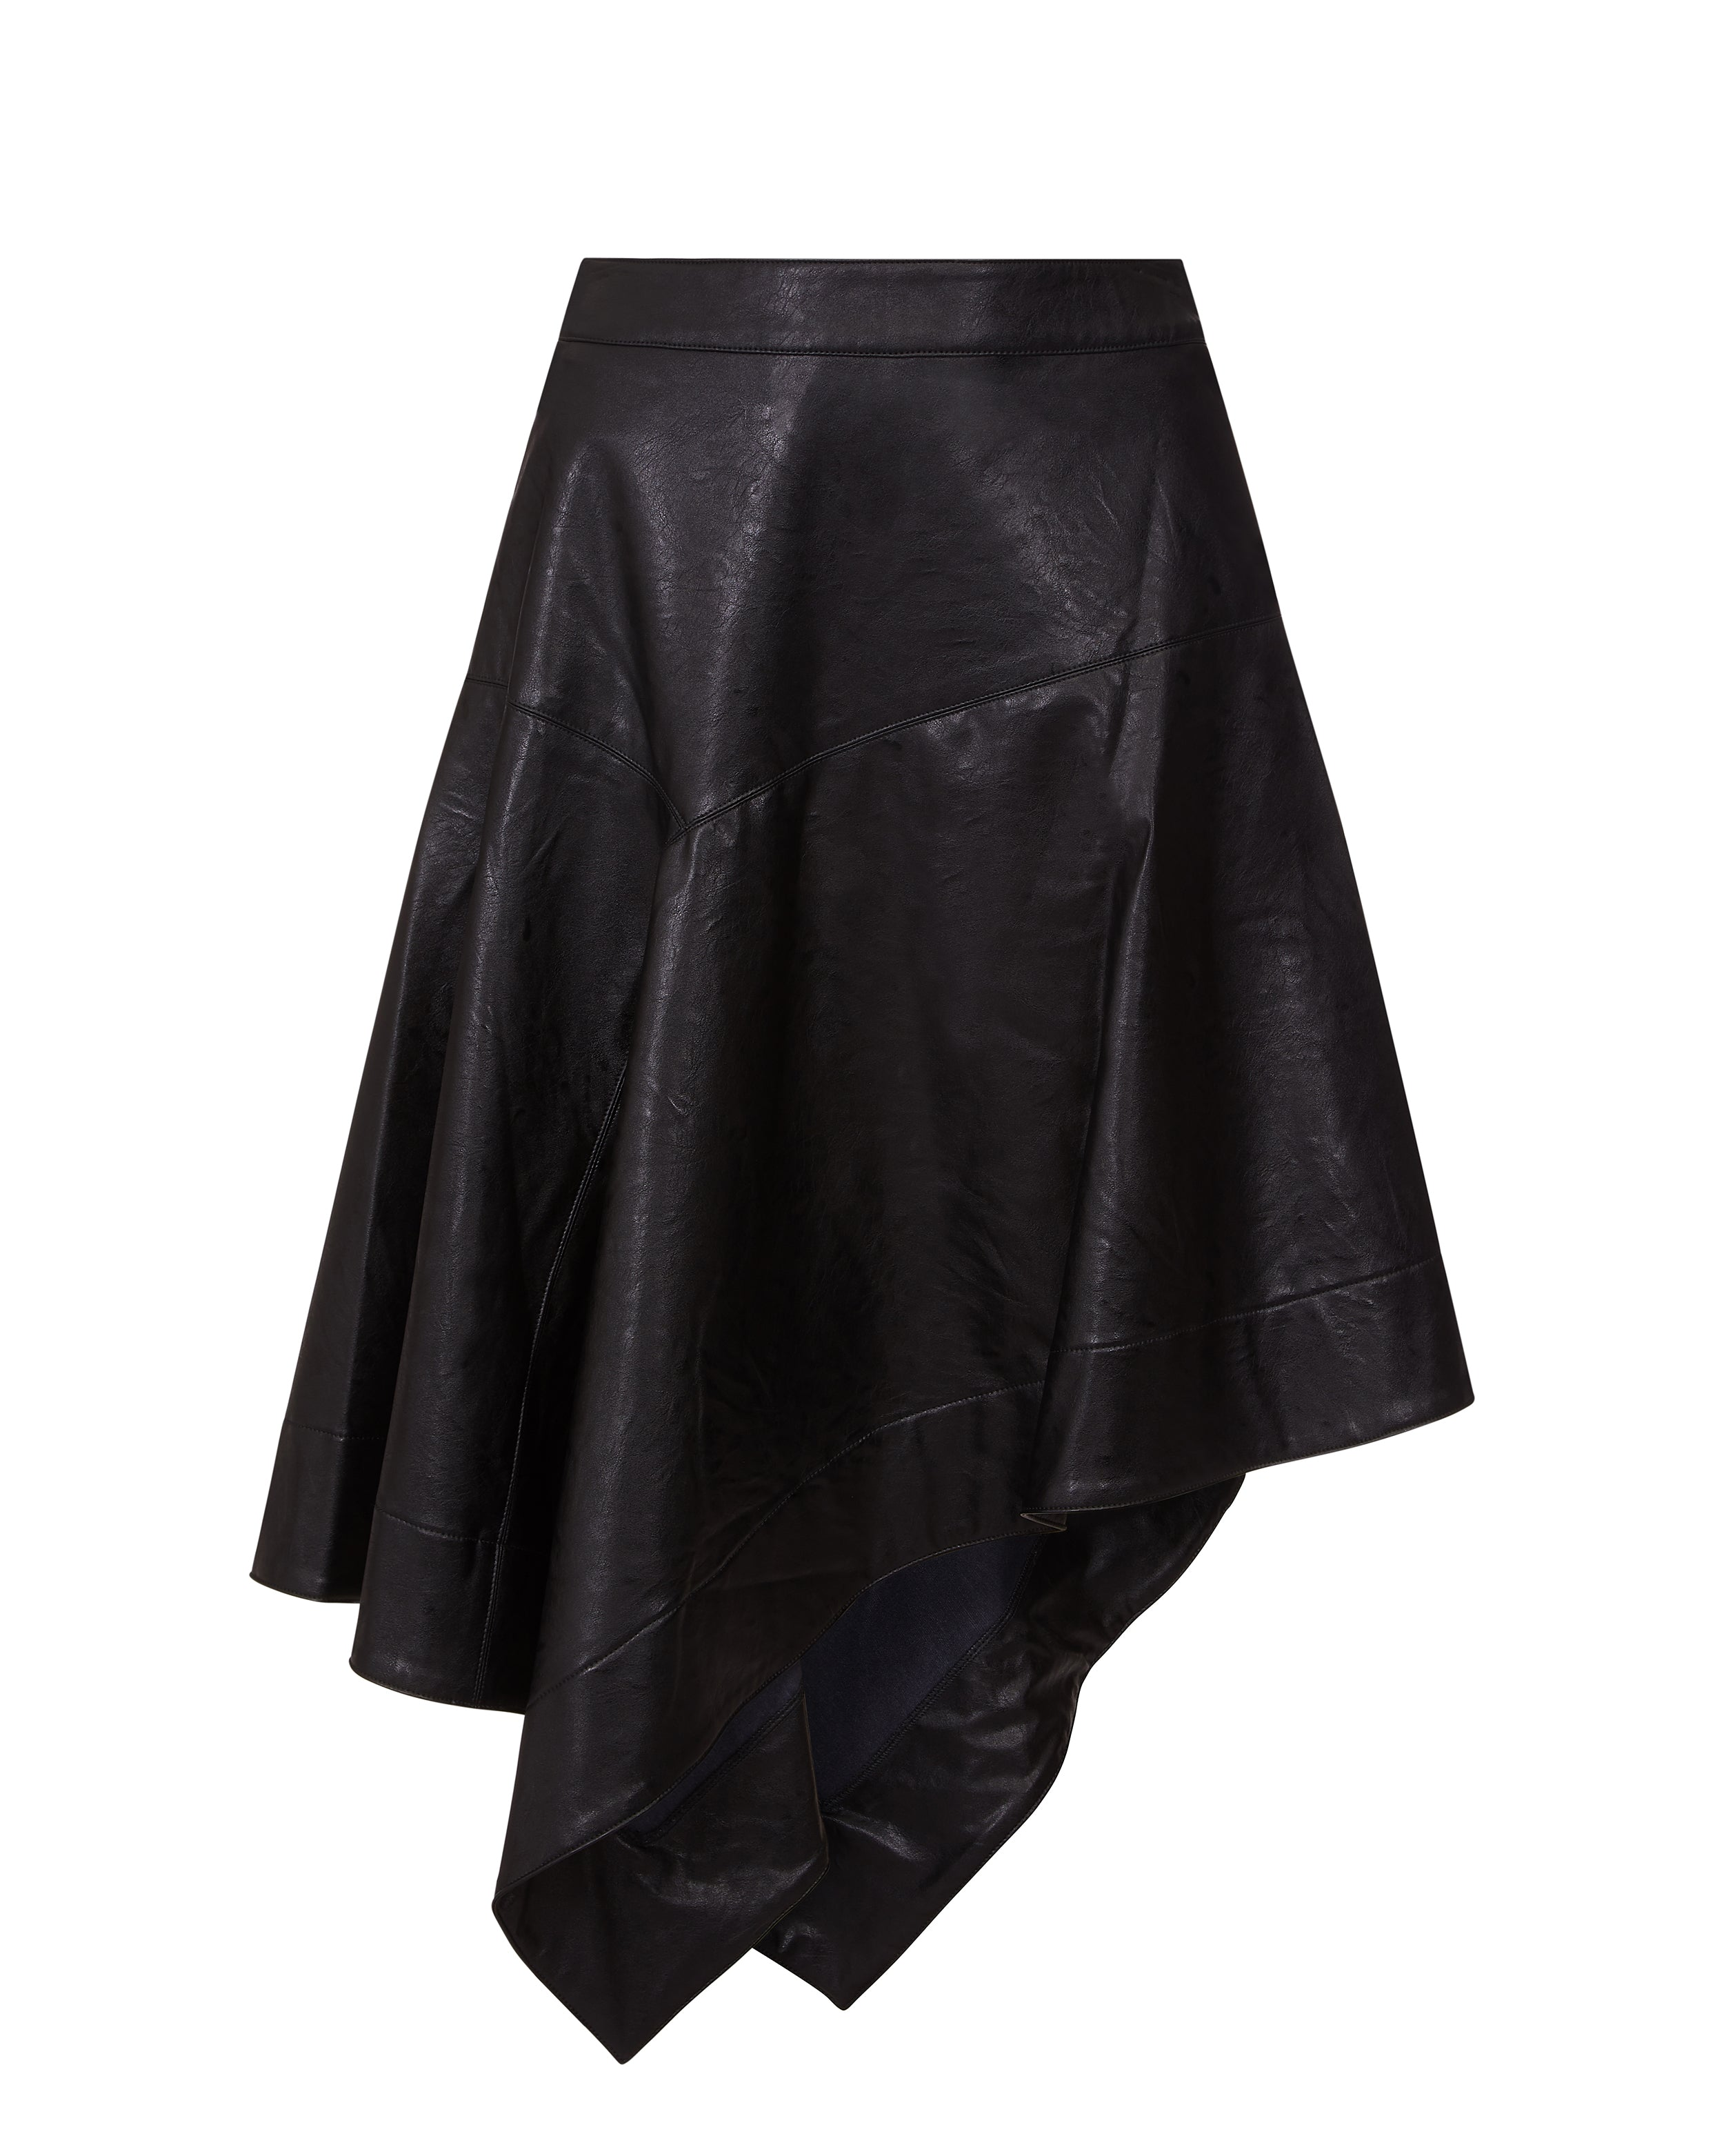 Mercredi Skirt in Cool Your Jets